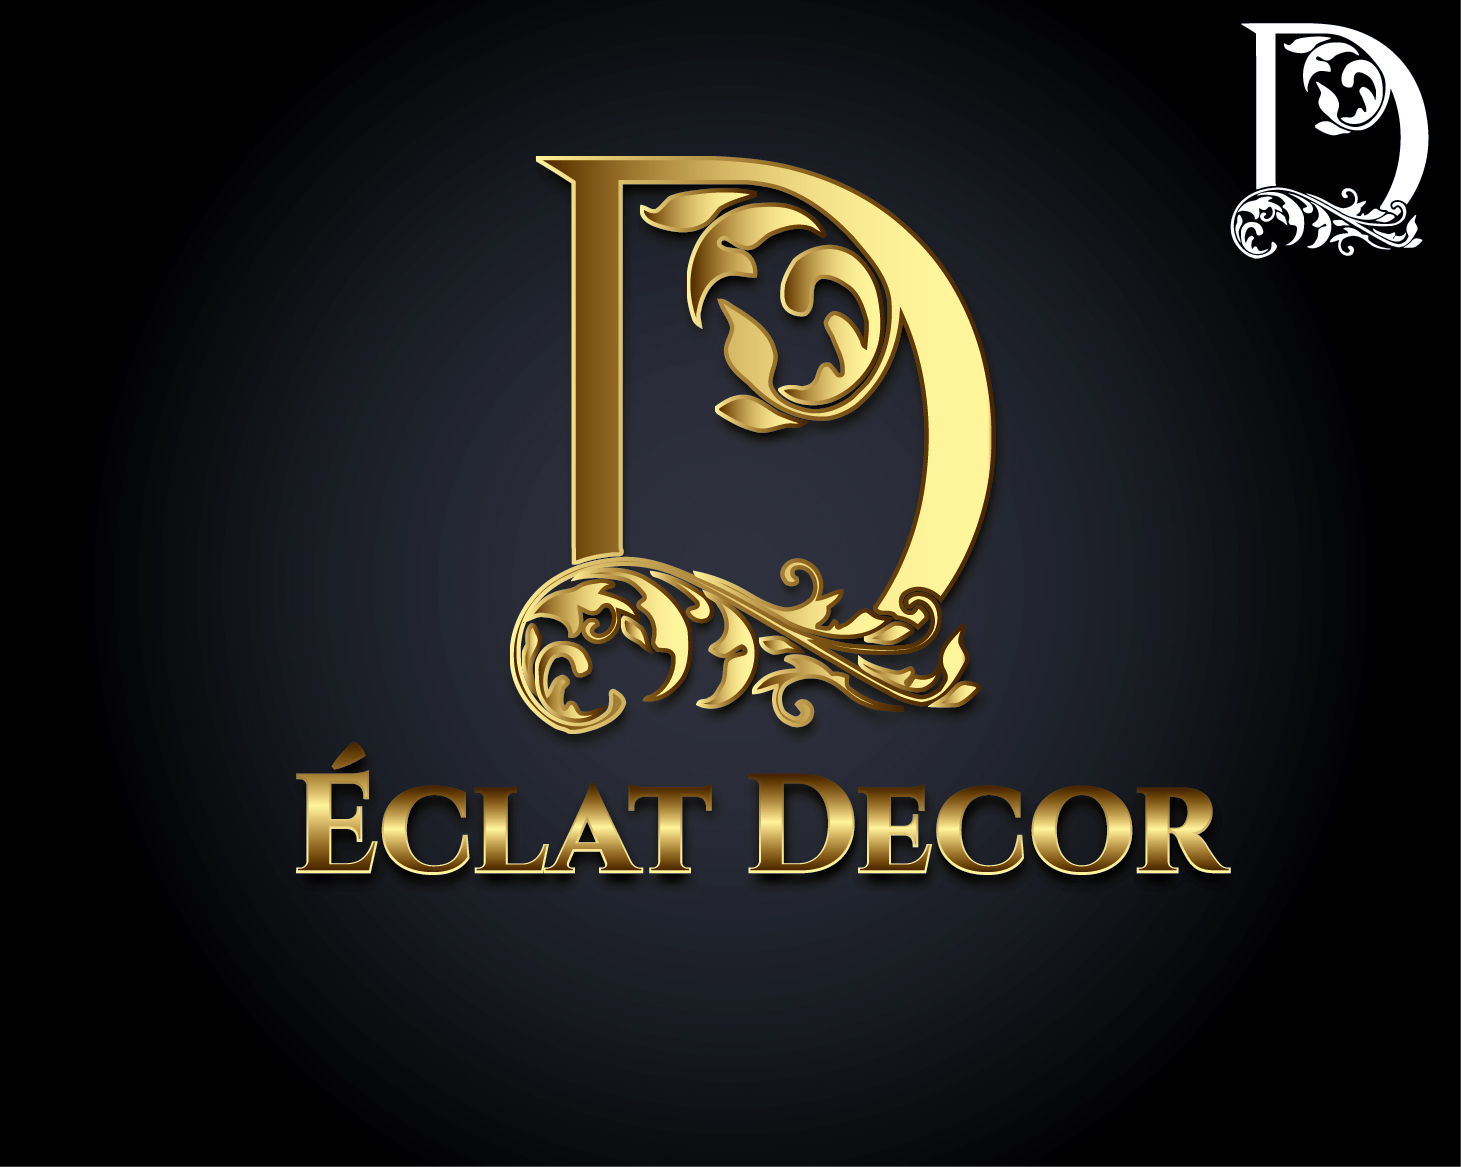 Logo Design by VENTSISLAV KOVACHEV - Entry No. 3 in the Logo Design Contest Imaginative Logo Design for Éclat Decor.